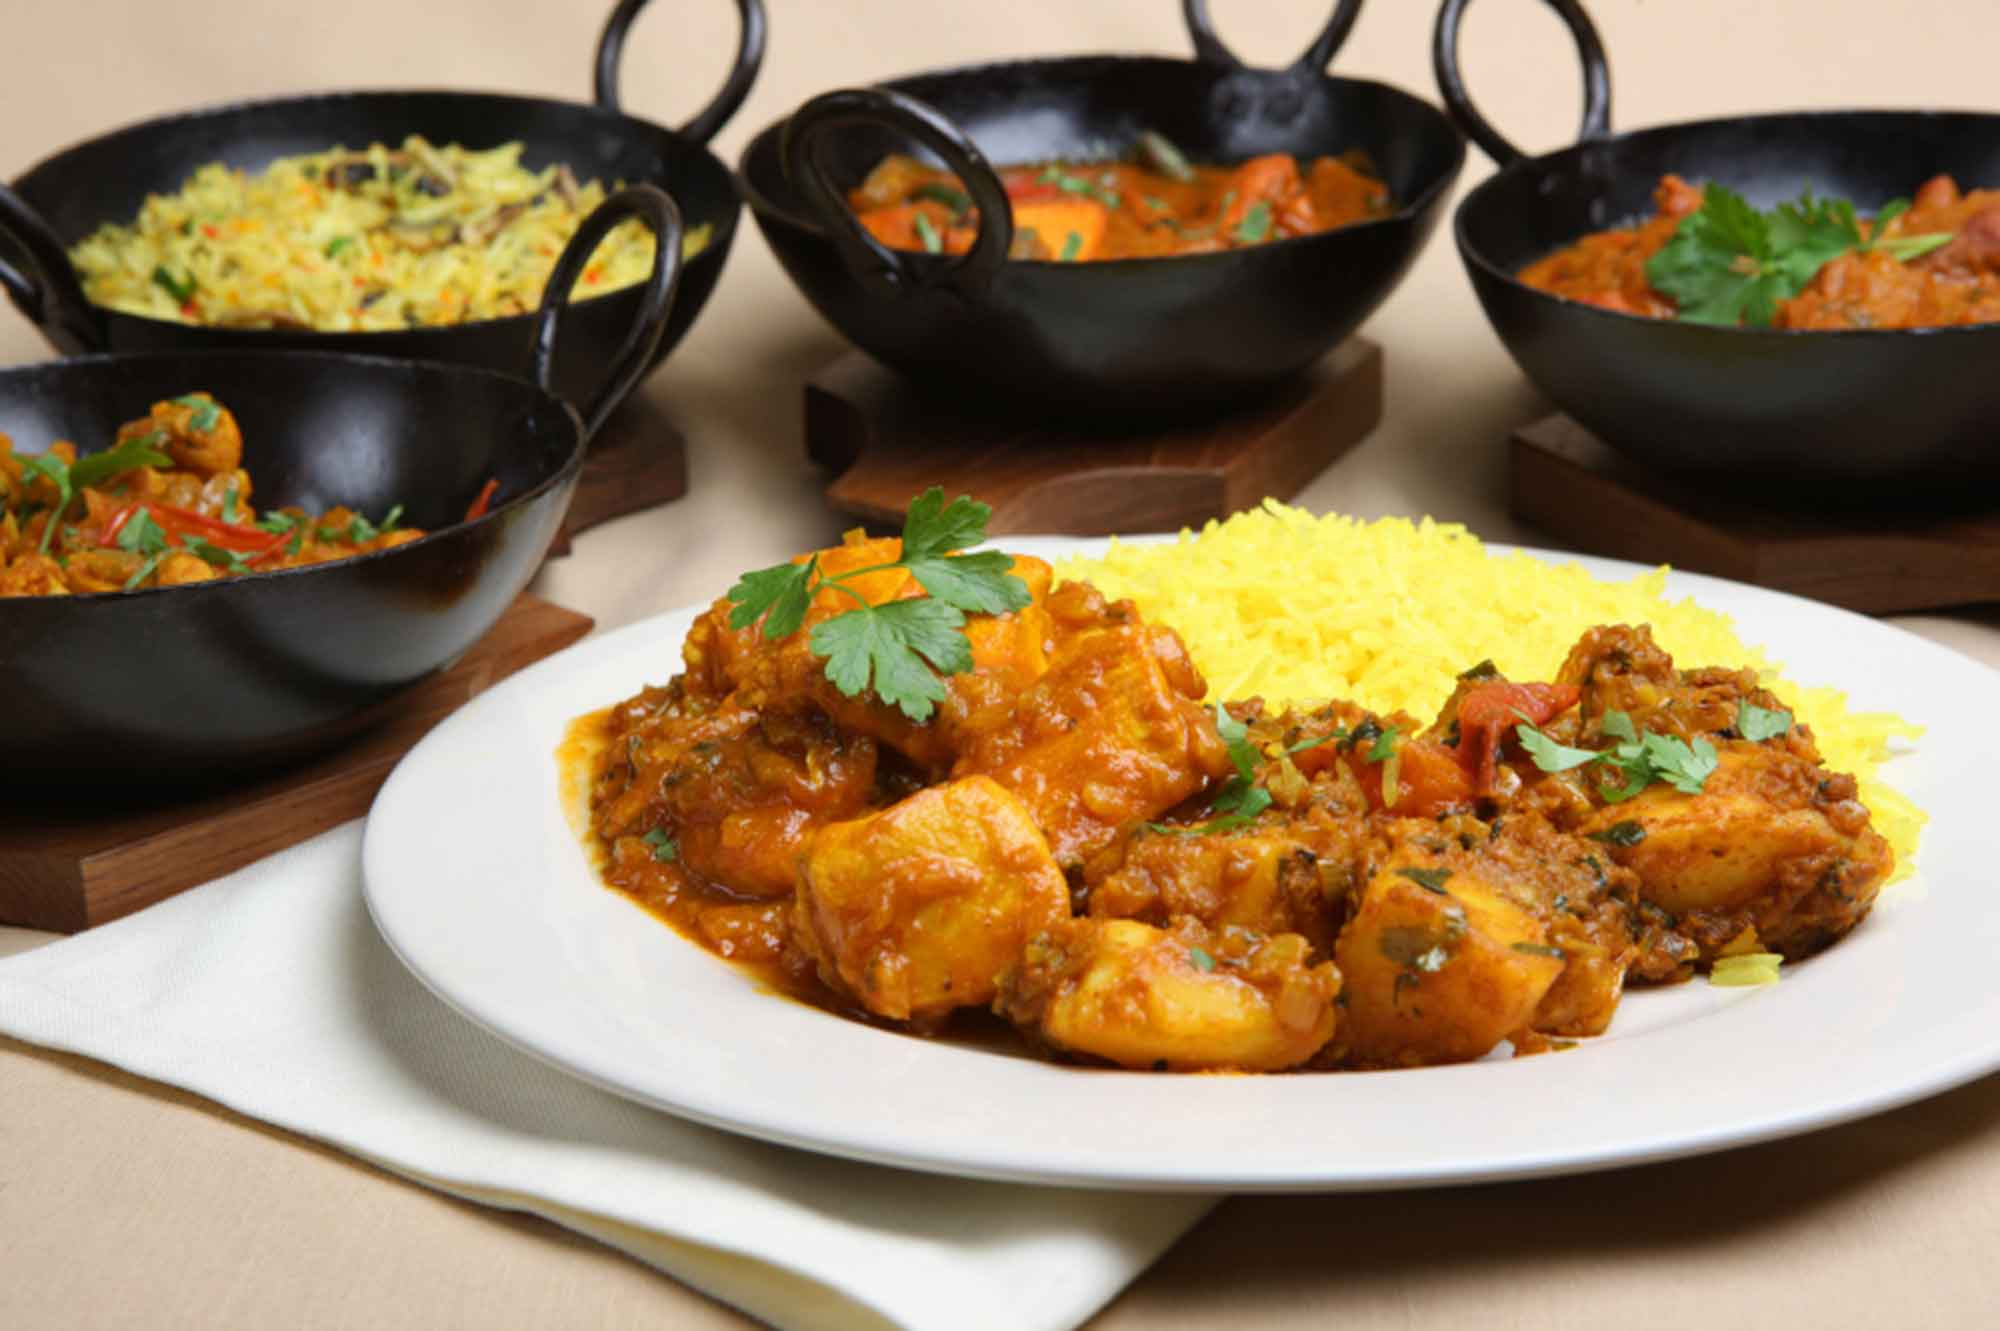 indian food South indian recipes, south indian cuisines rice and coconut, spicy and is a brilliant blend of flavors, colors, seasoning, nutritional balance, fragrance, taste.